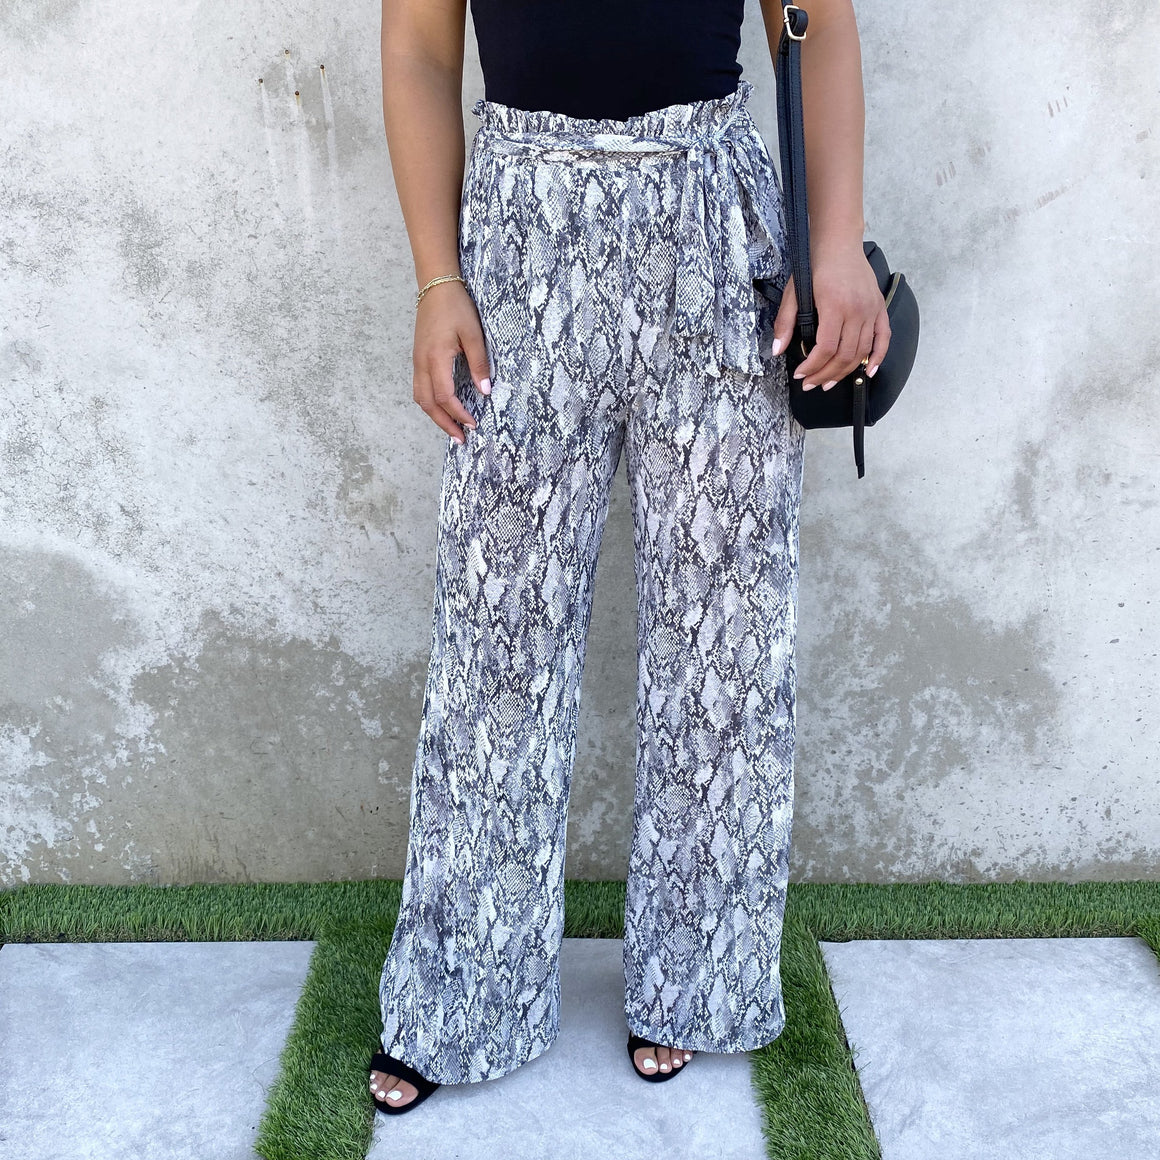 Rhythm Black & White Snakeskin Print High Waist Pants - Dainty Hooligan